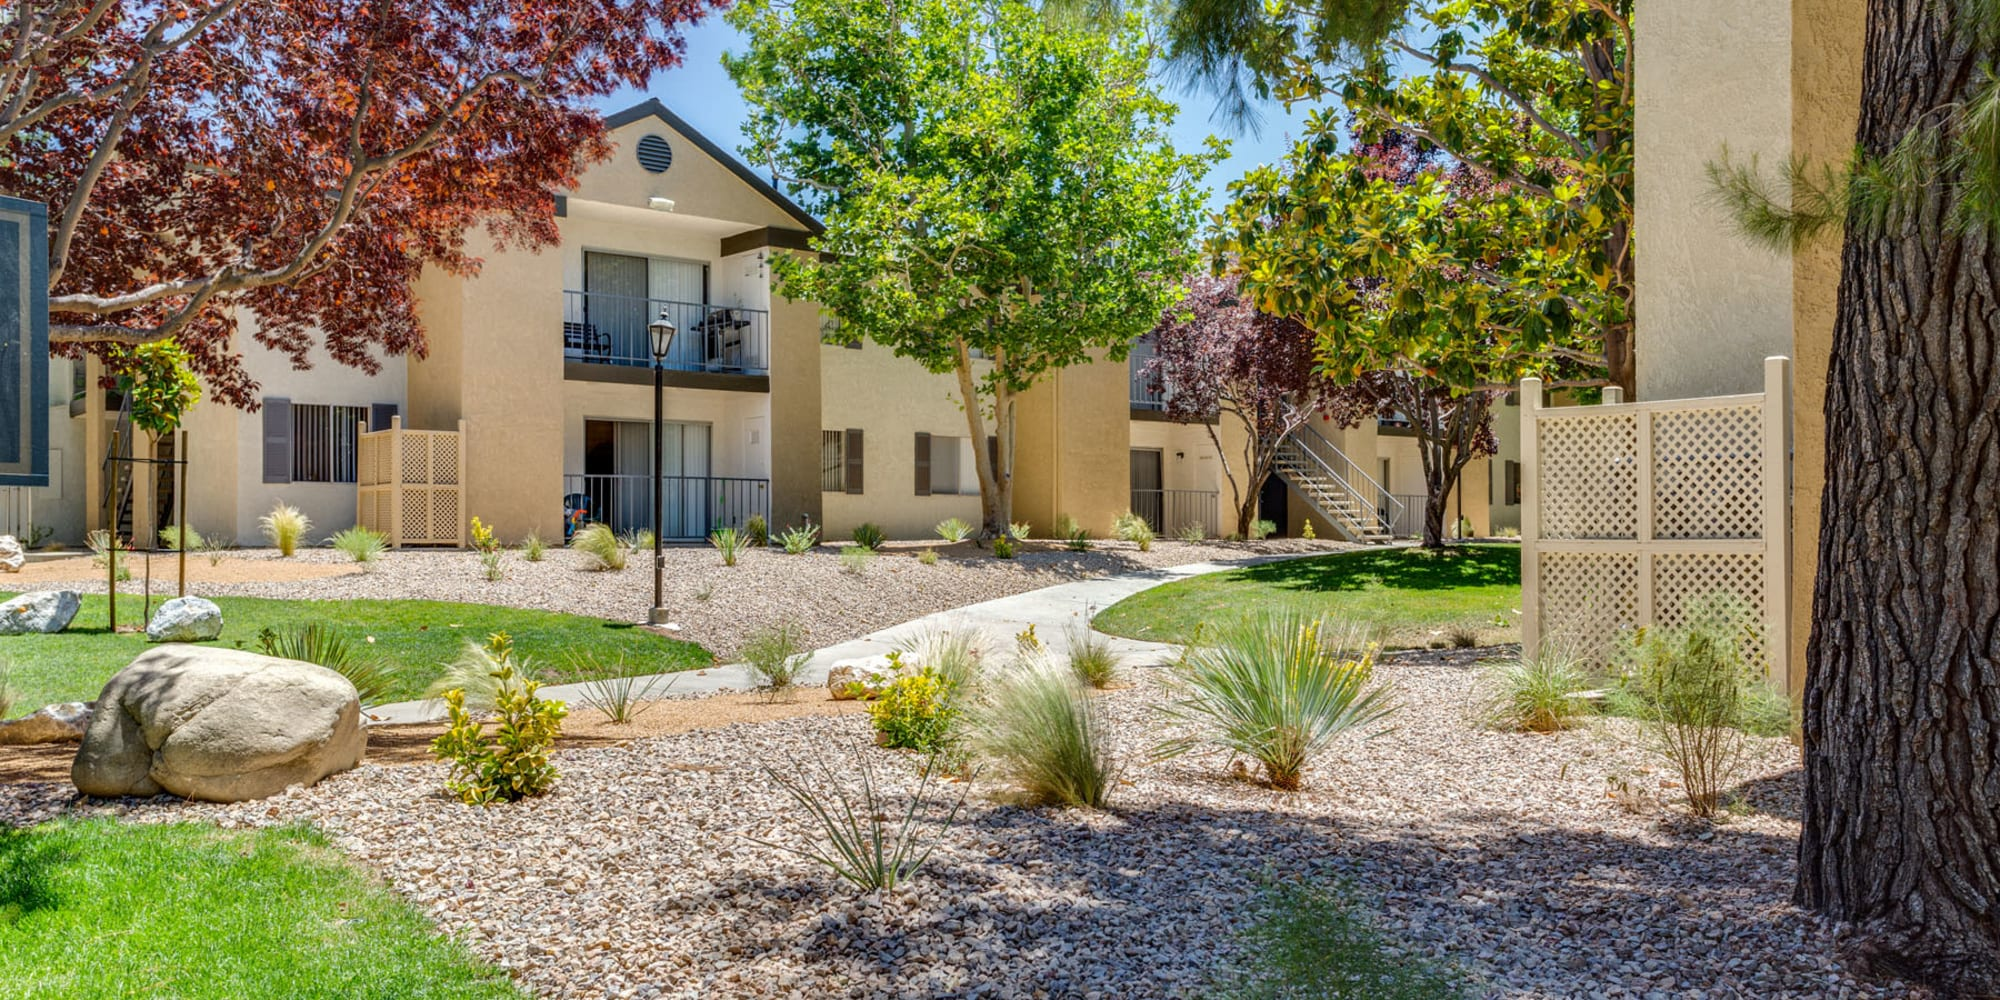 High desert landscaping mixed with lush vegetation and mature trees at Mountain Vista in Victorville, California